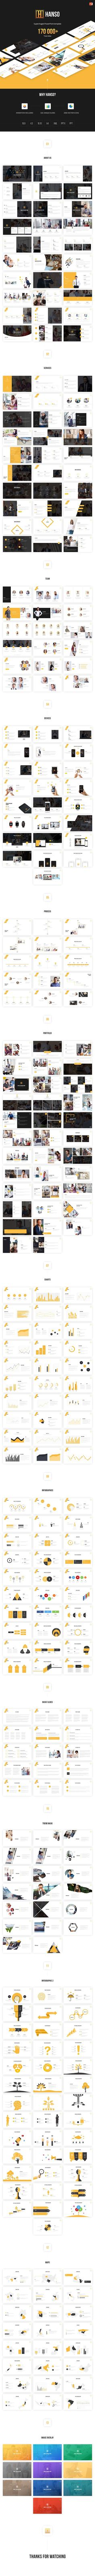 Supercharged PowerPoint Template by Grooni on @creativemarket #powerpoint #presentation #template #graphicriver #free #business